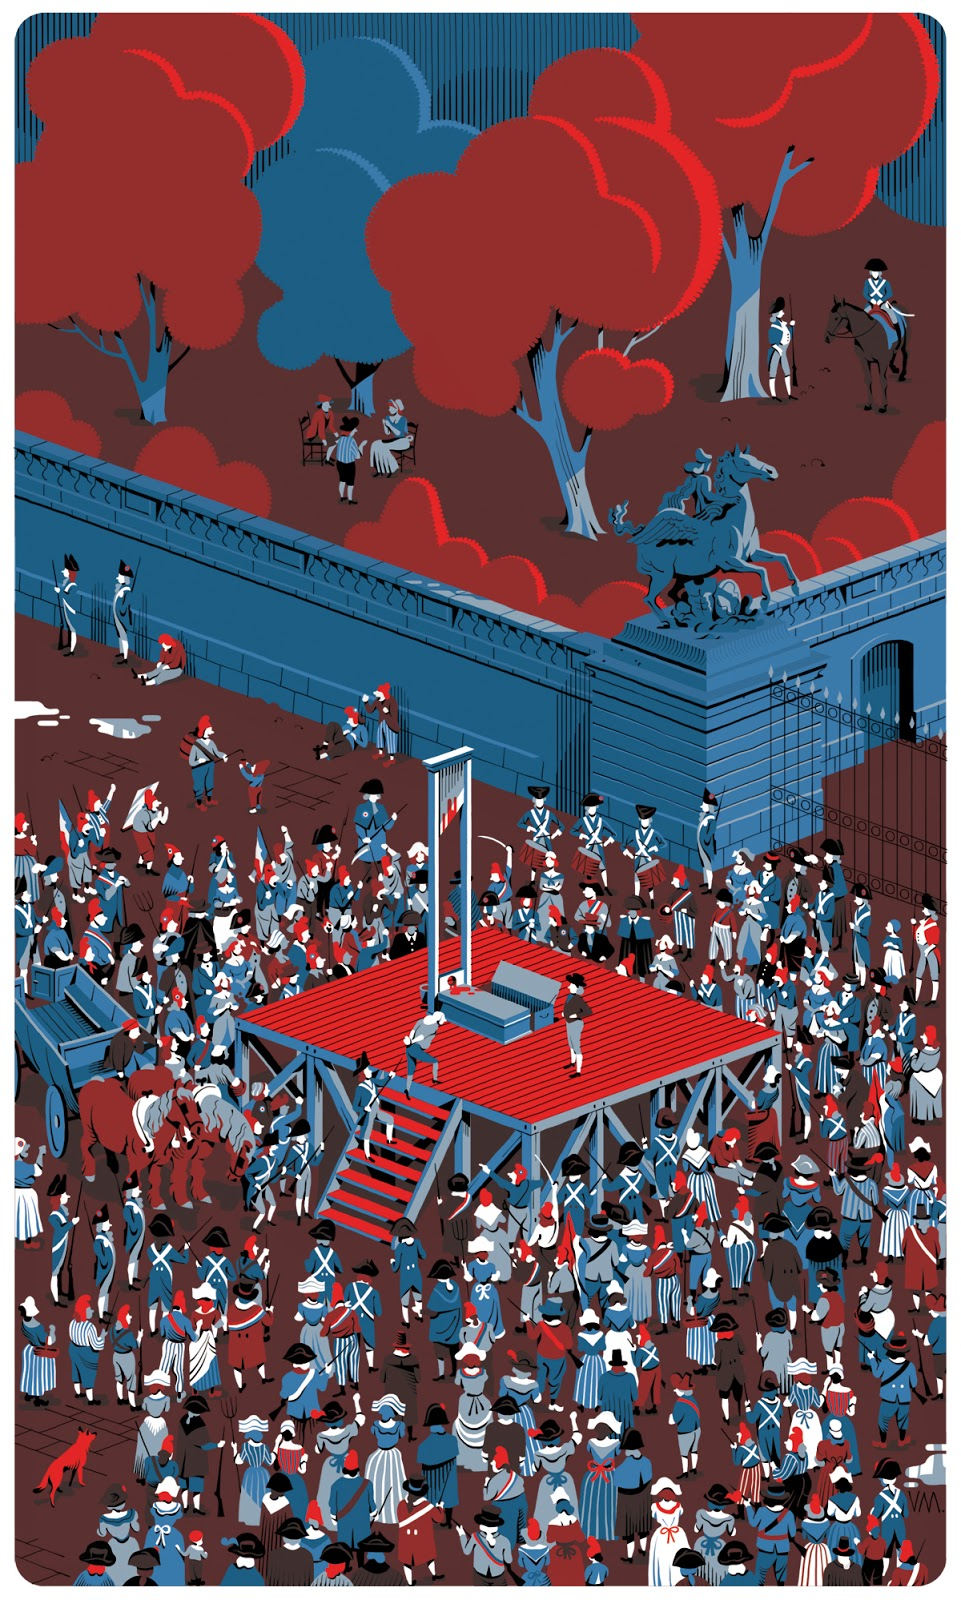 The Next 100 Years >> Vincent Mahé | BLDGWLF